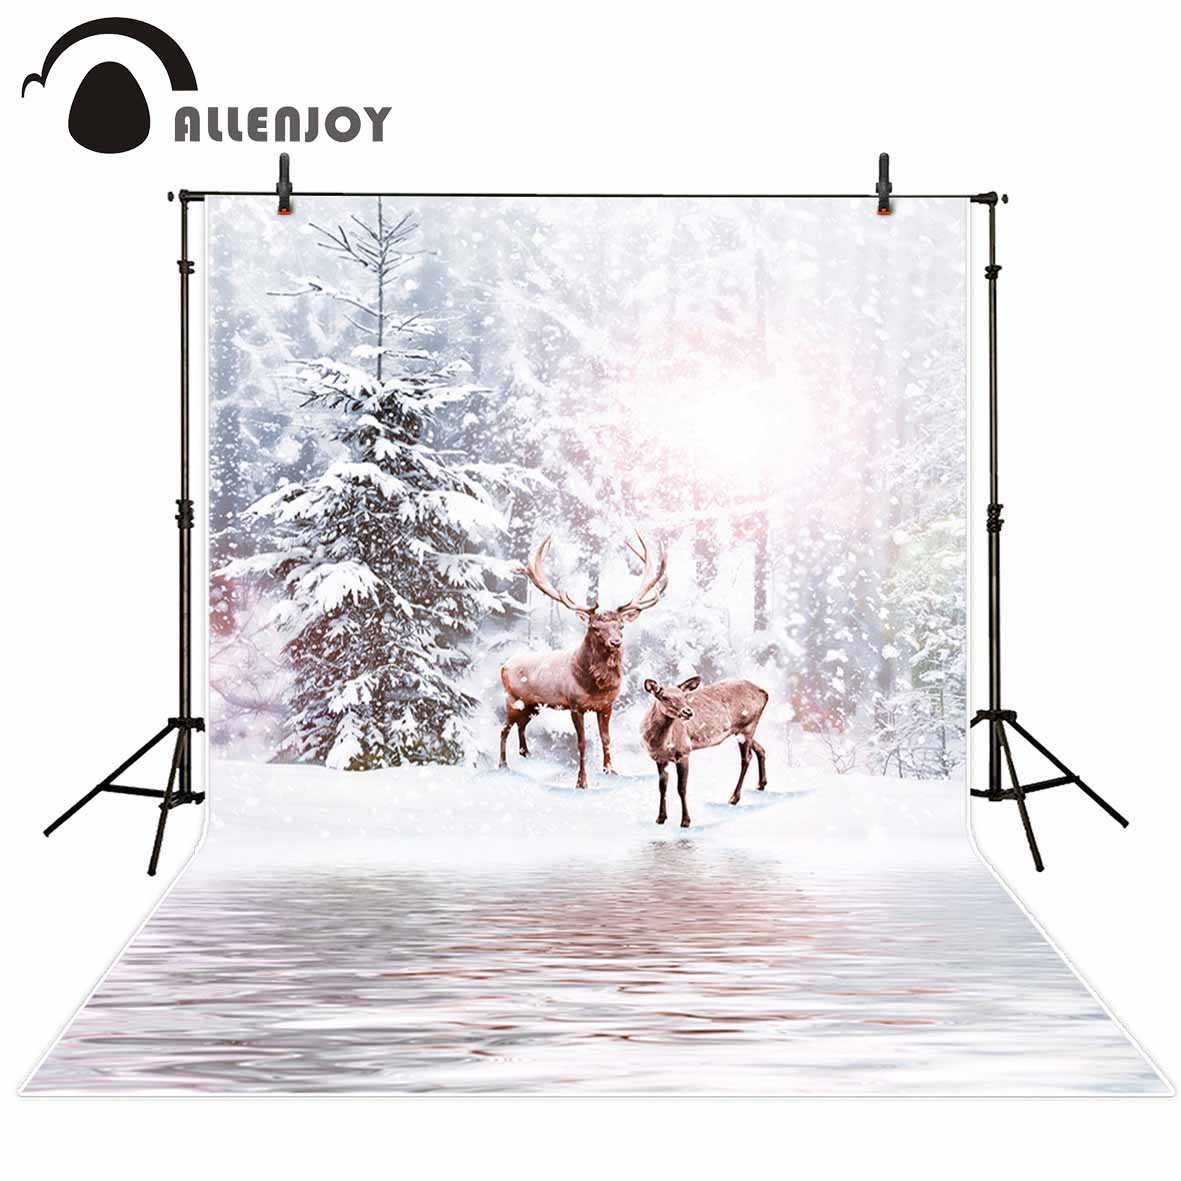 Allenjoy photography backdrop winter elk snow river Christmas bokeh background photobooth for a photo shoot original design